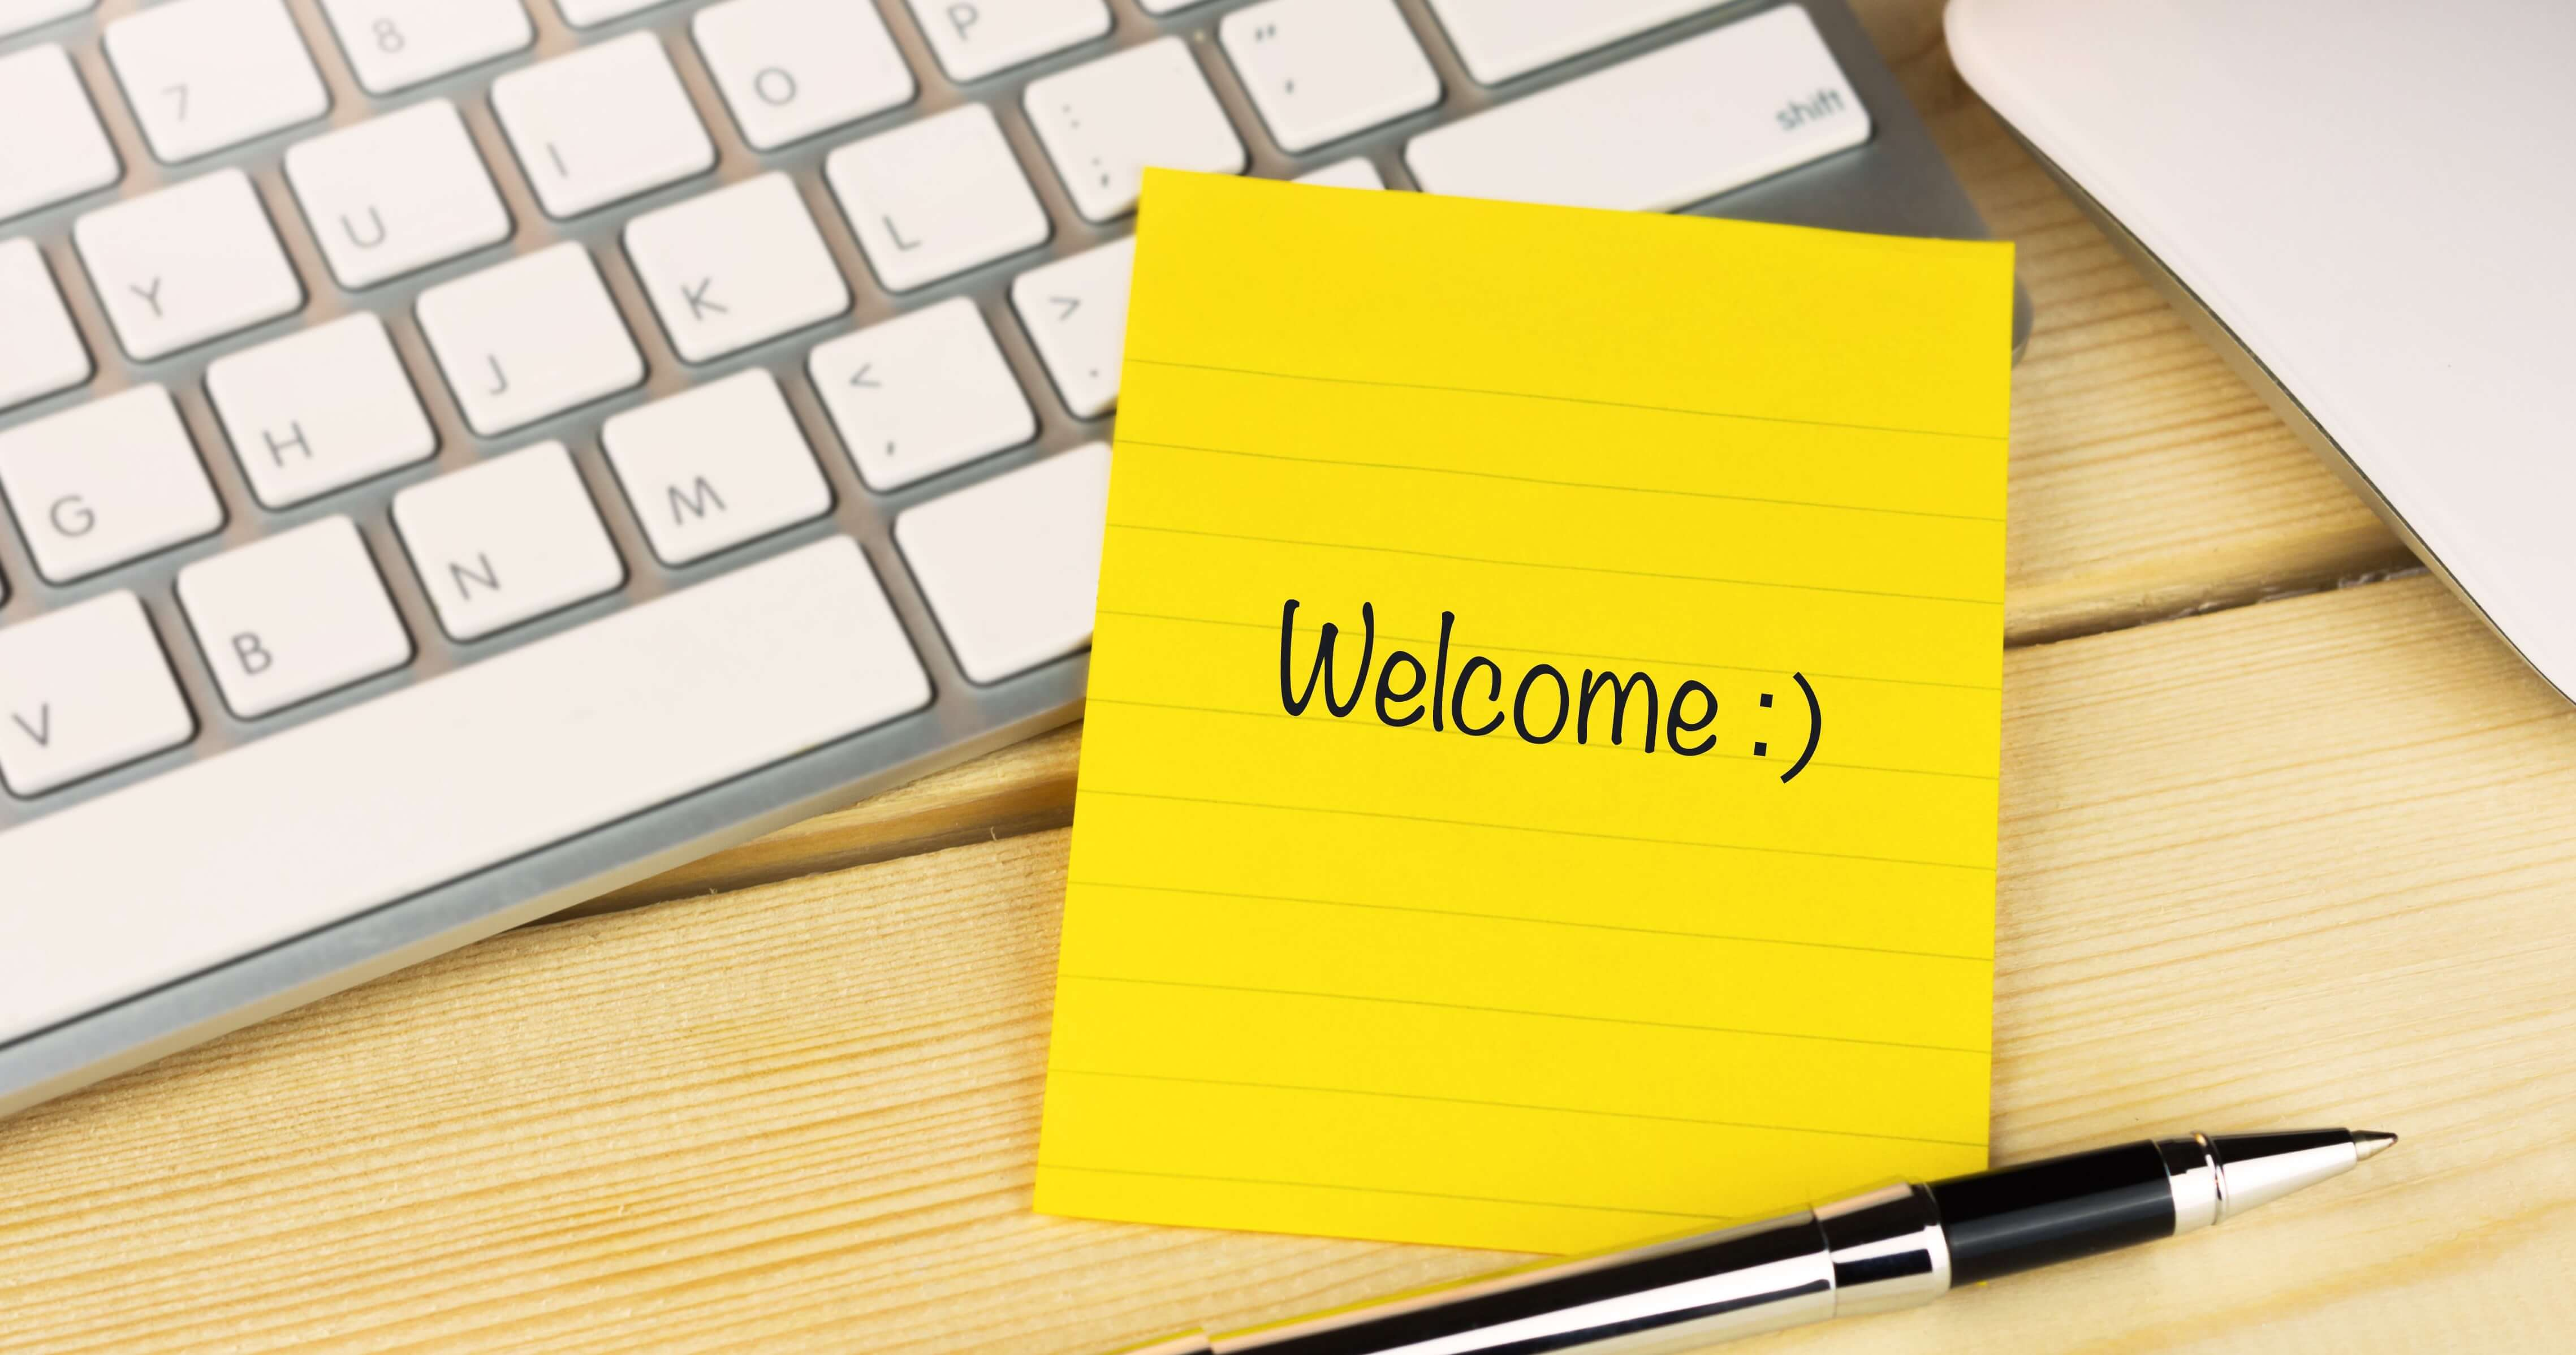 What to Include in an Employee's Onboarding Experience